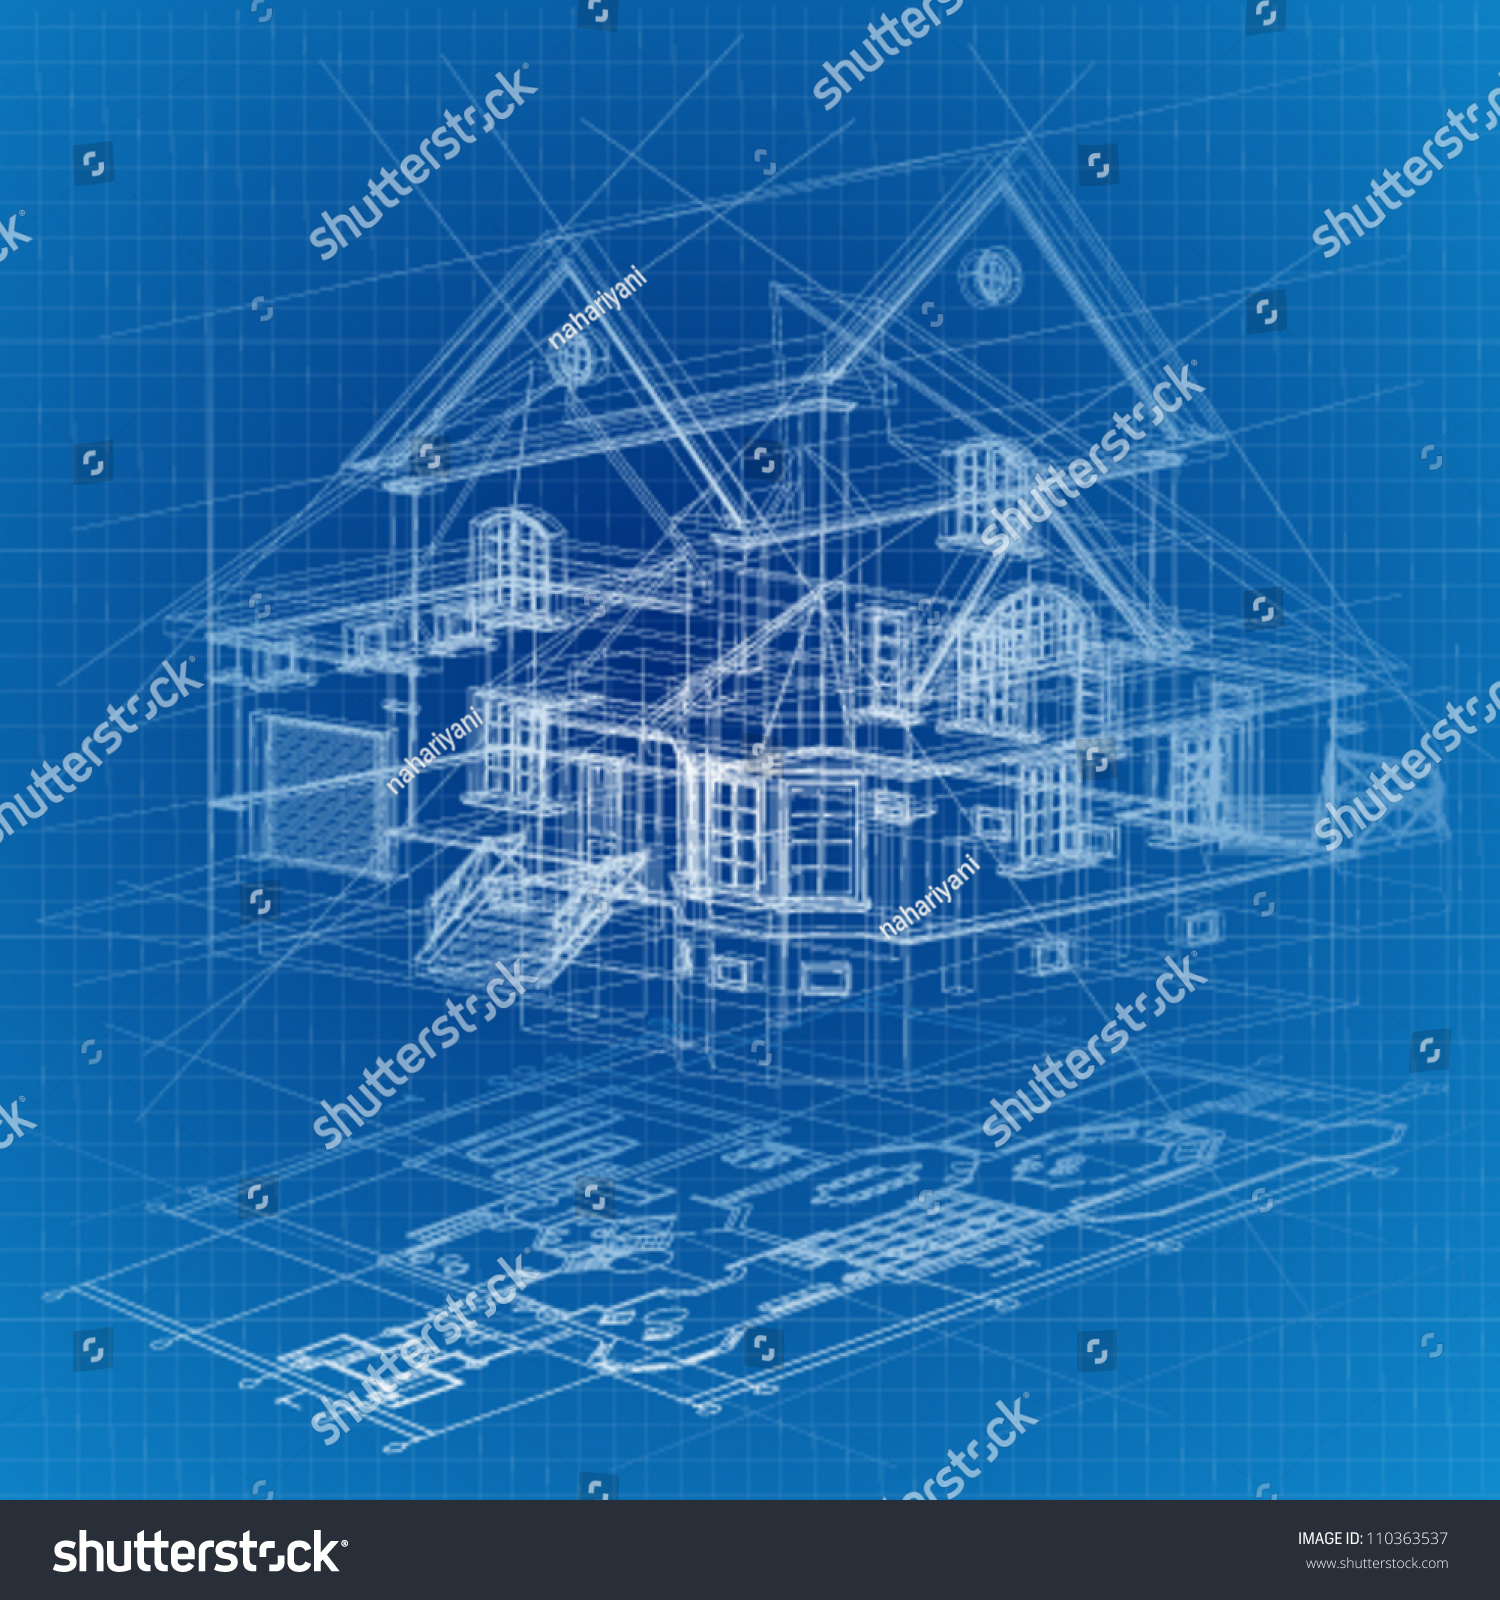 Stock Vector Architectural Background With A D Building Model Vector Clip Art 110363537 Architectural Background 3d Building